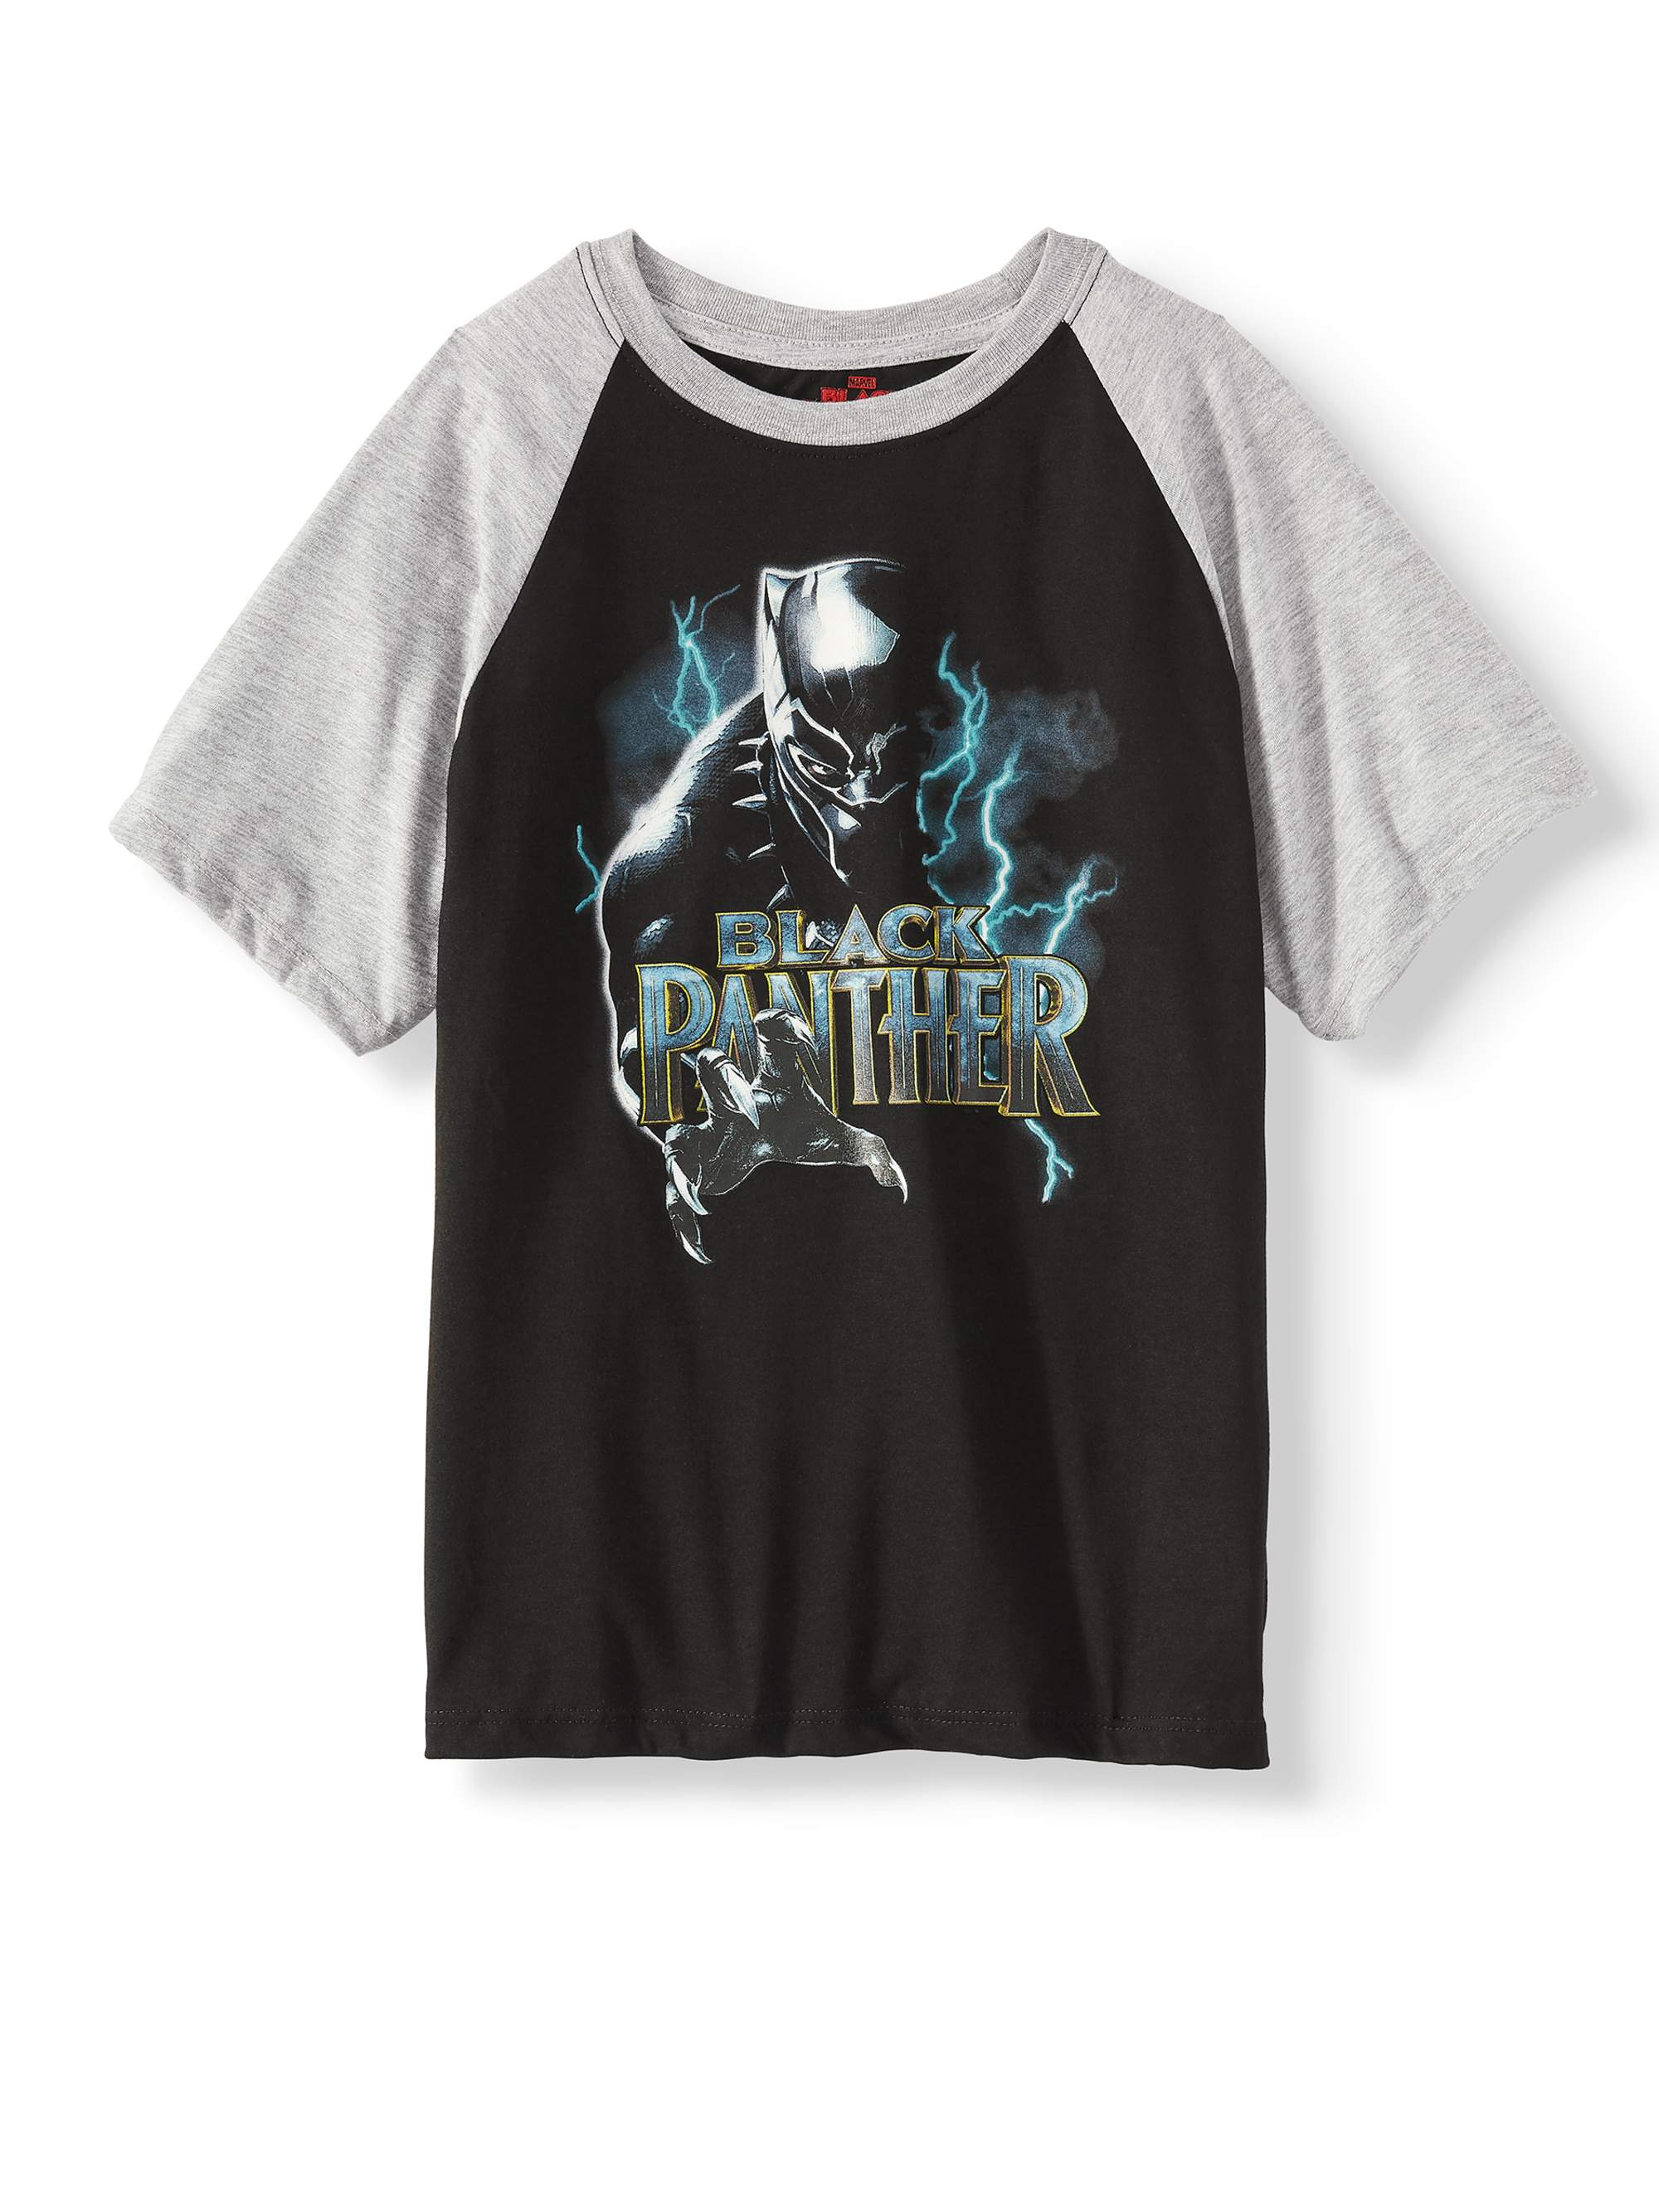 Short Sleeve Black Panther Raglan Tee Shirt (Big Boys)